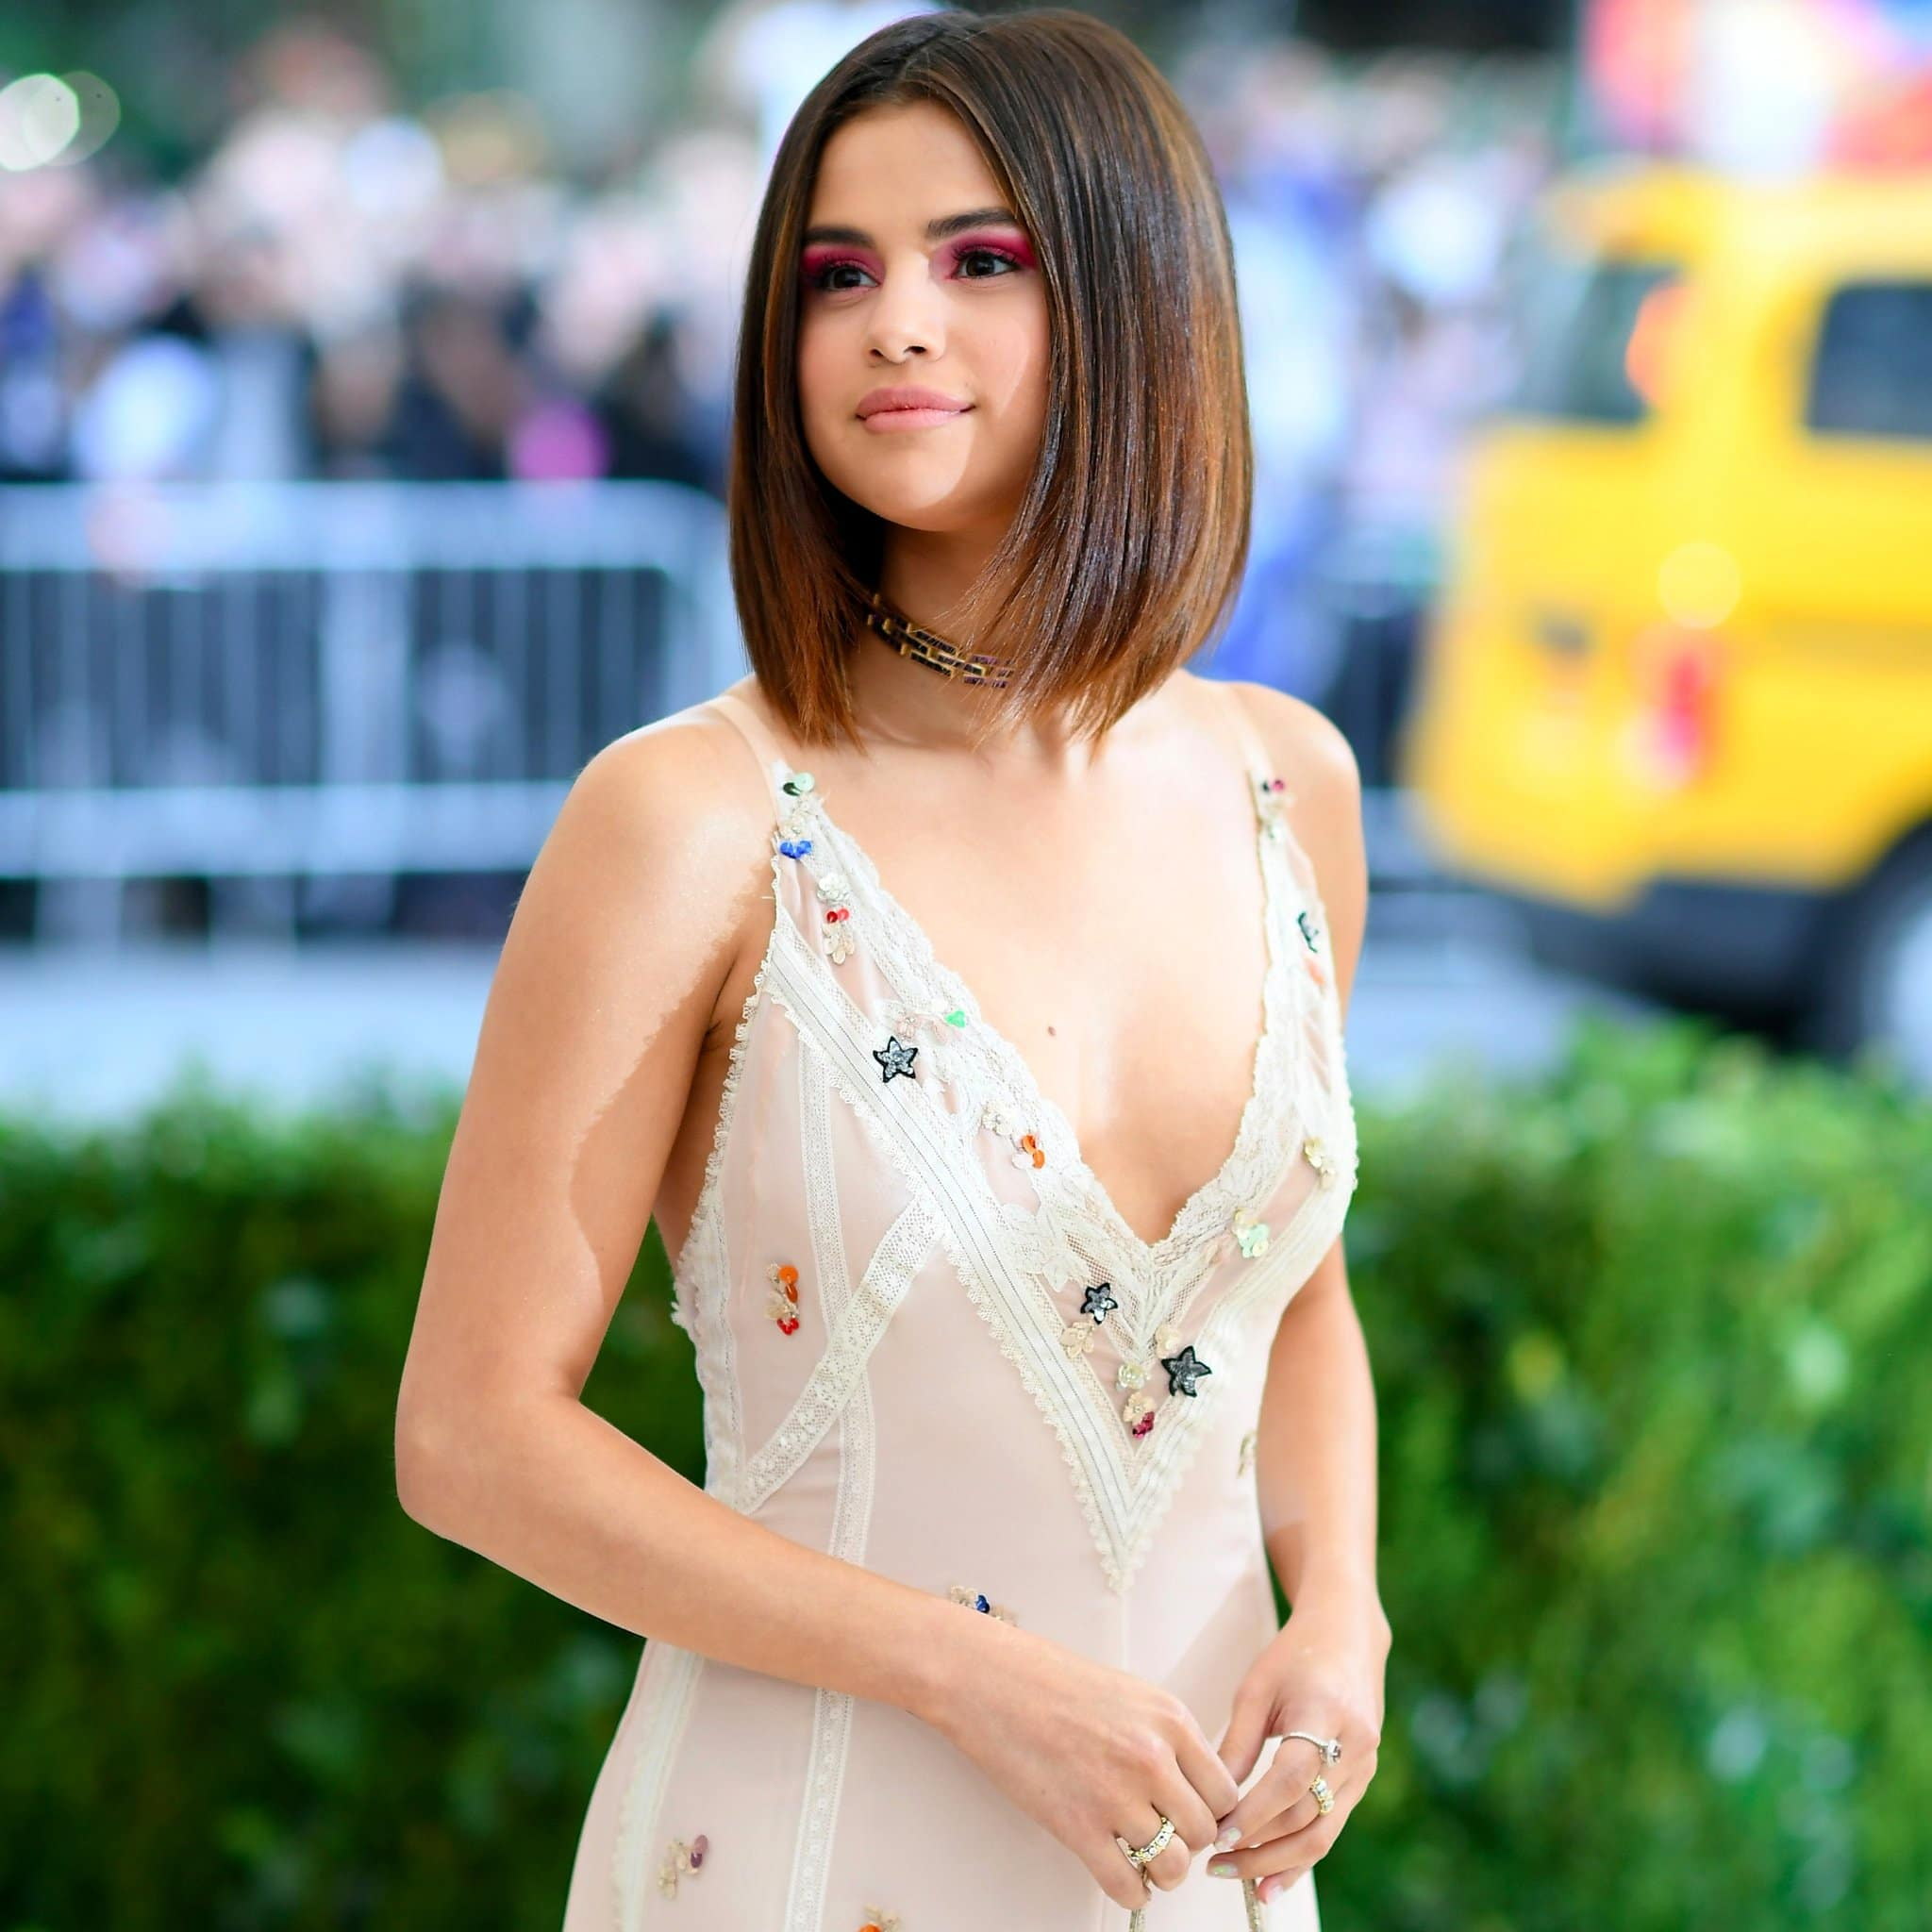 Selena Gomez Joins Robert Downey, Jr. in 'Doctor Dolittle' Movie